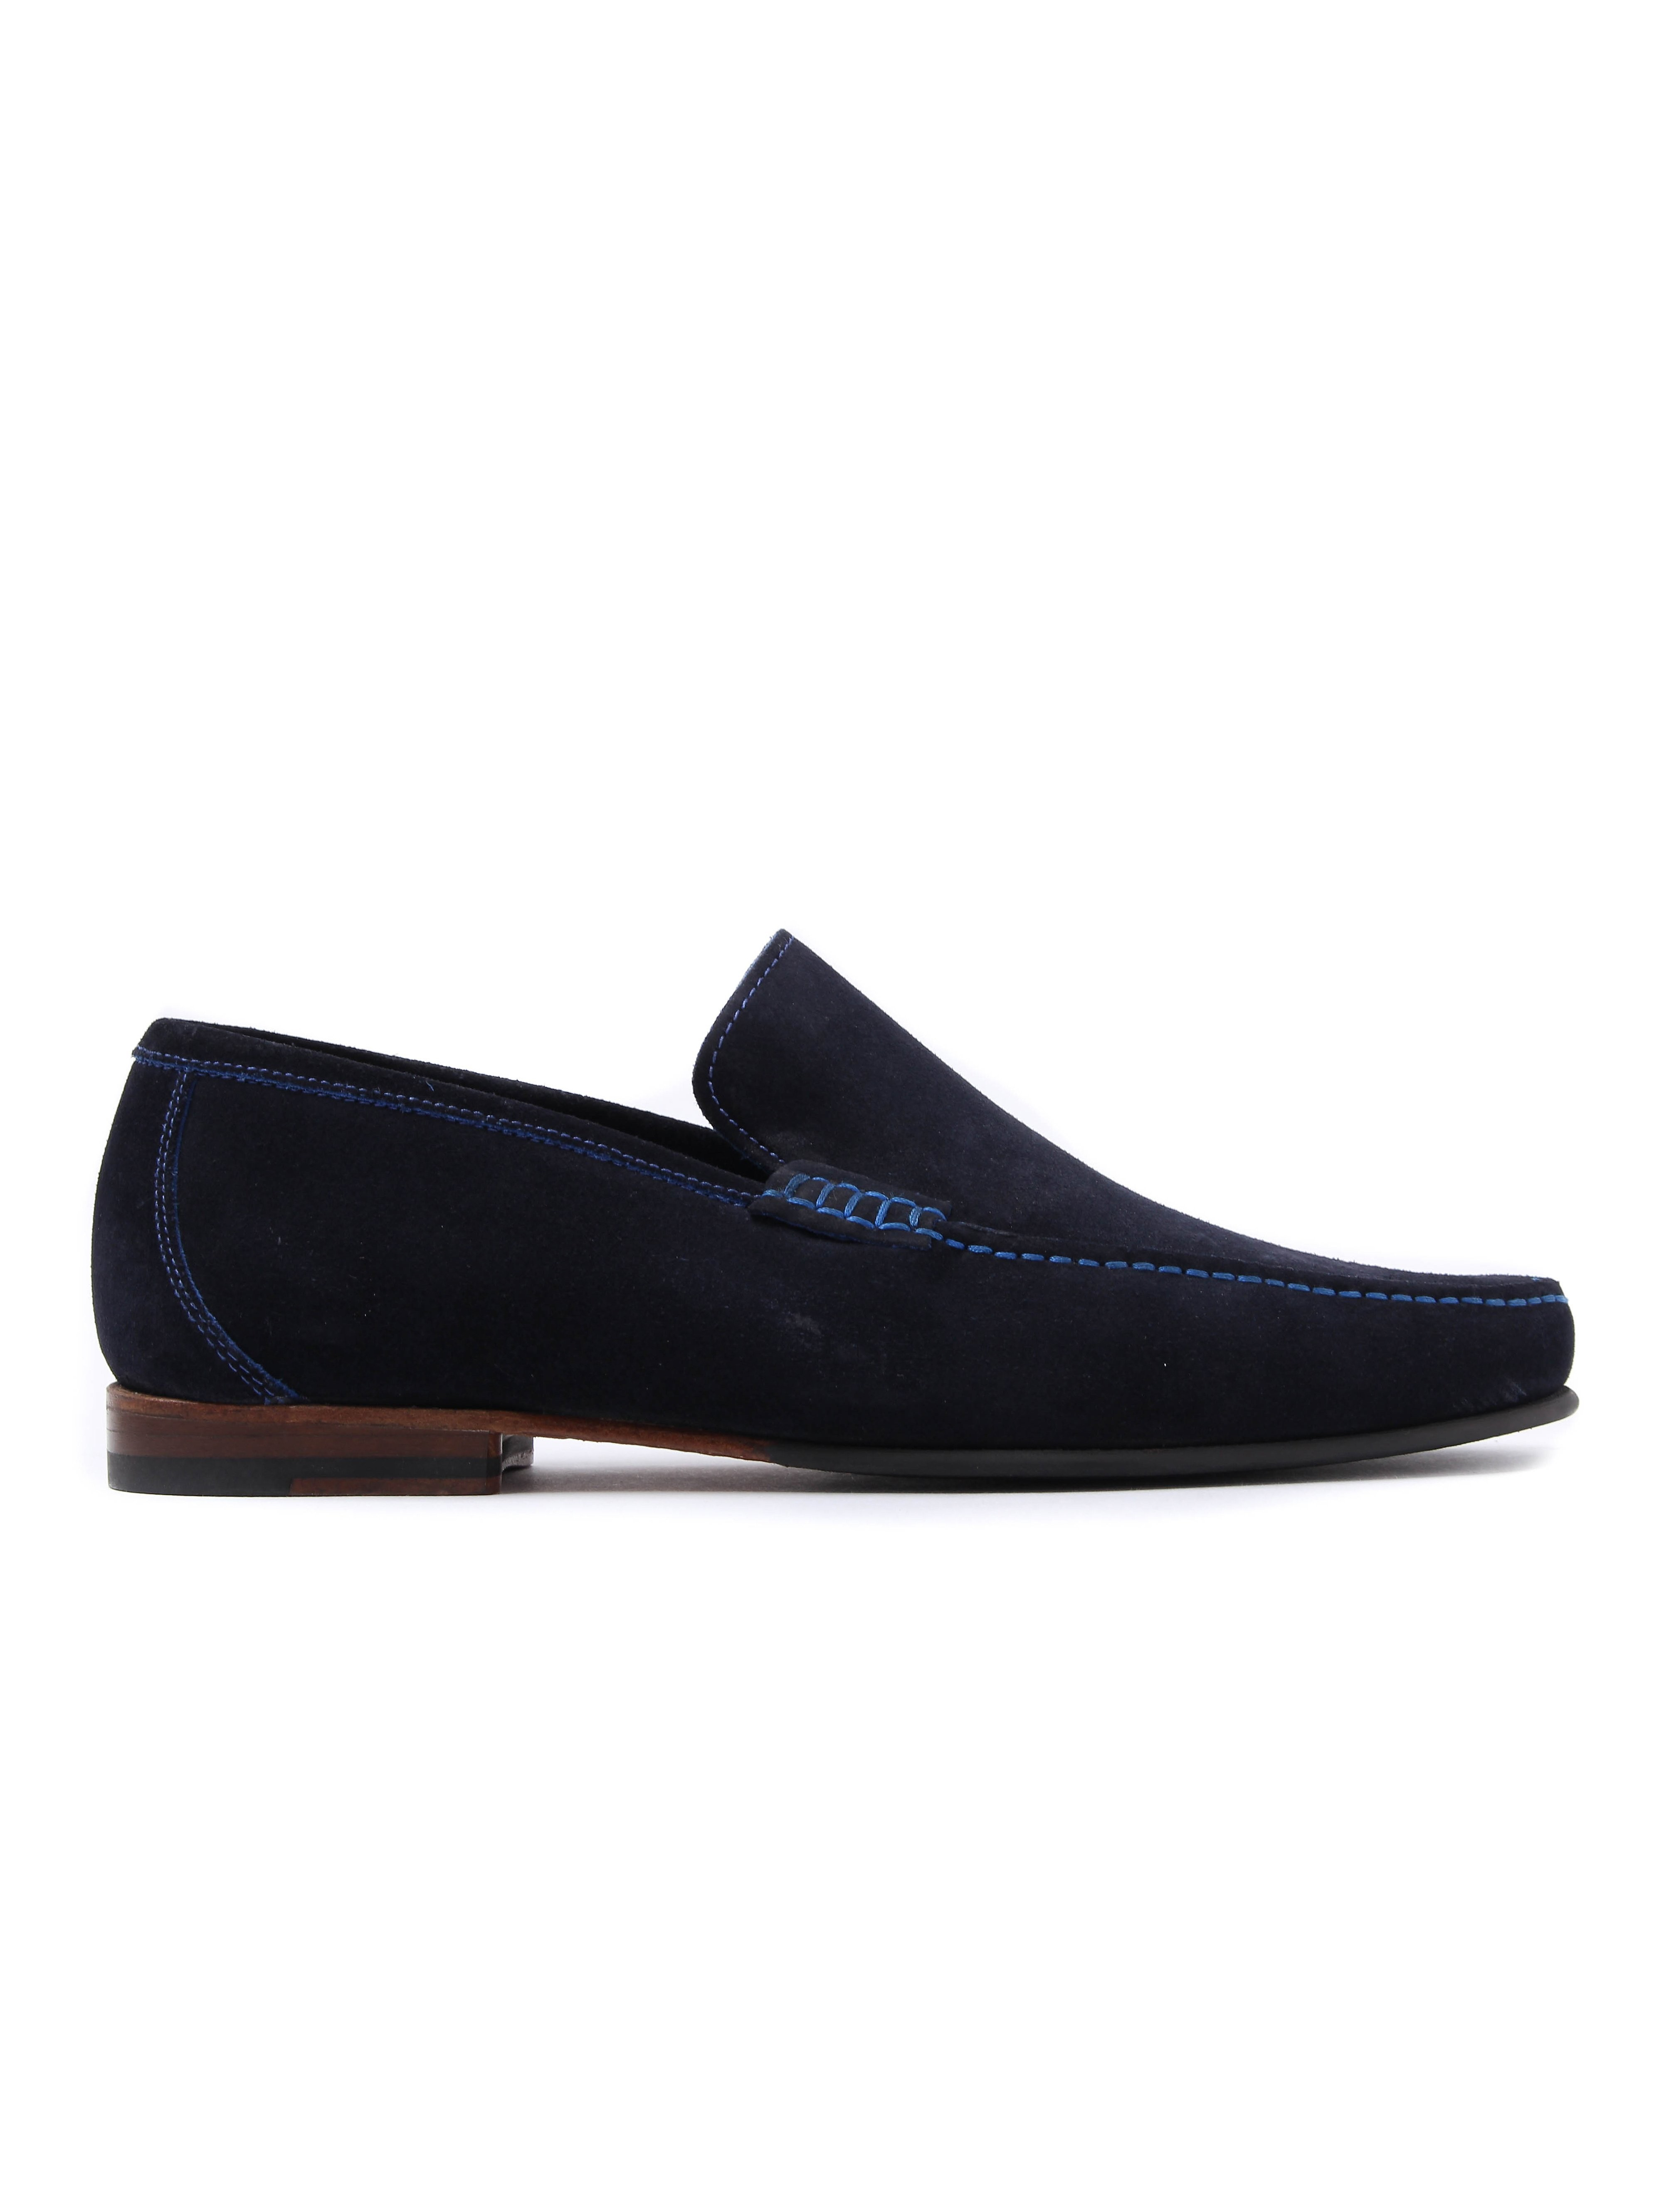 Loake Nicholson Mens Suede Shoes - Navy